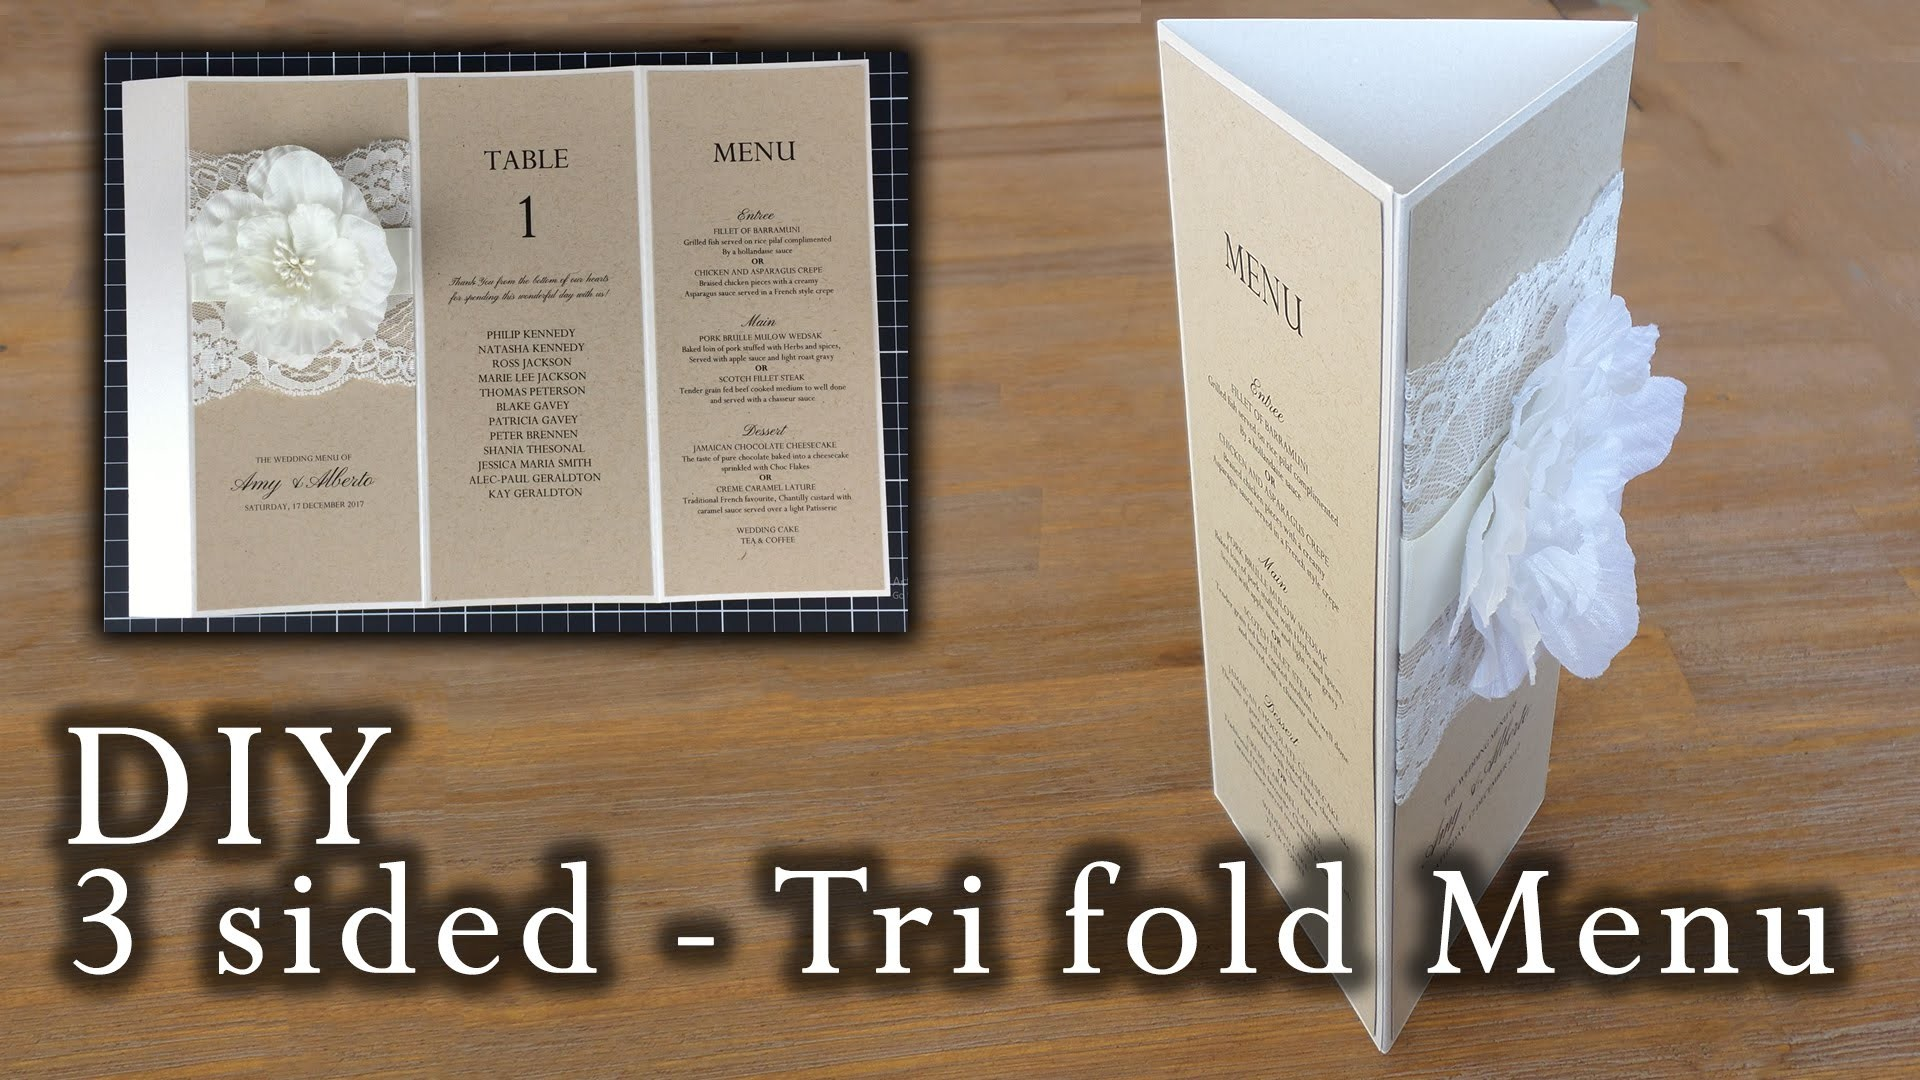 How to make a rustic 3 sided tri fold menu | wedding menu | DIY invitations